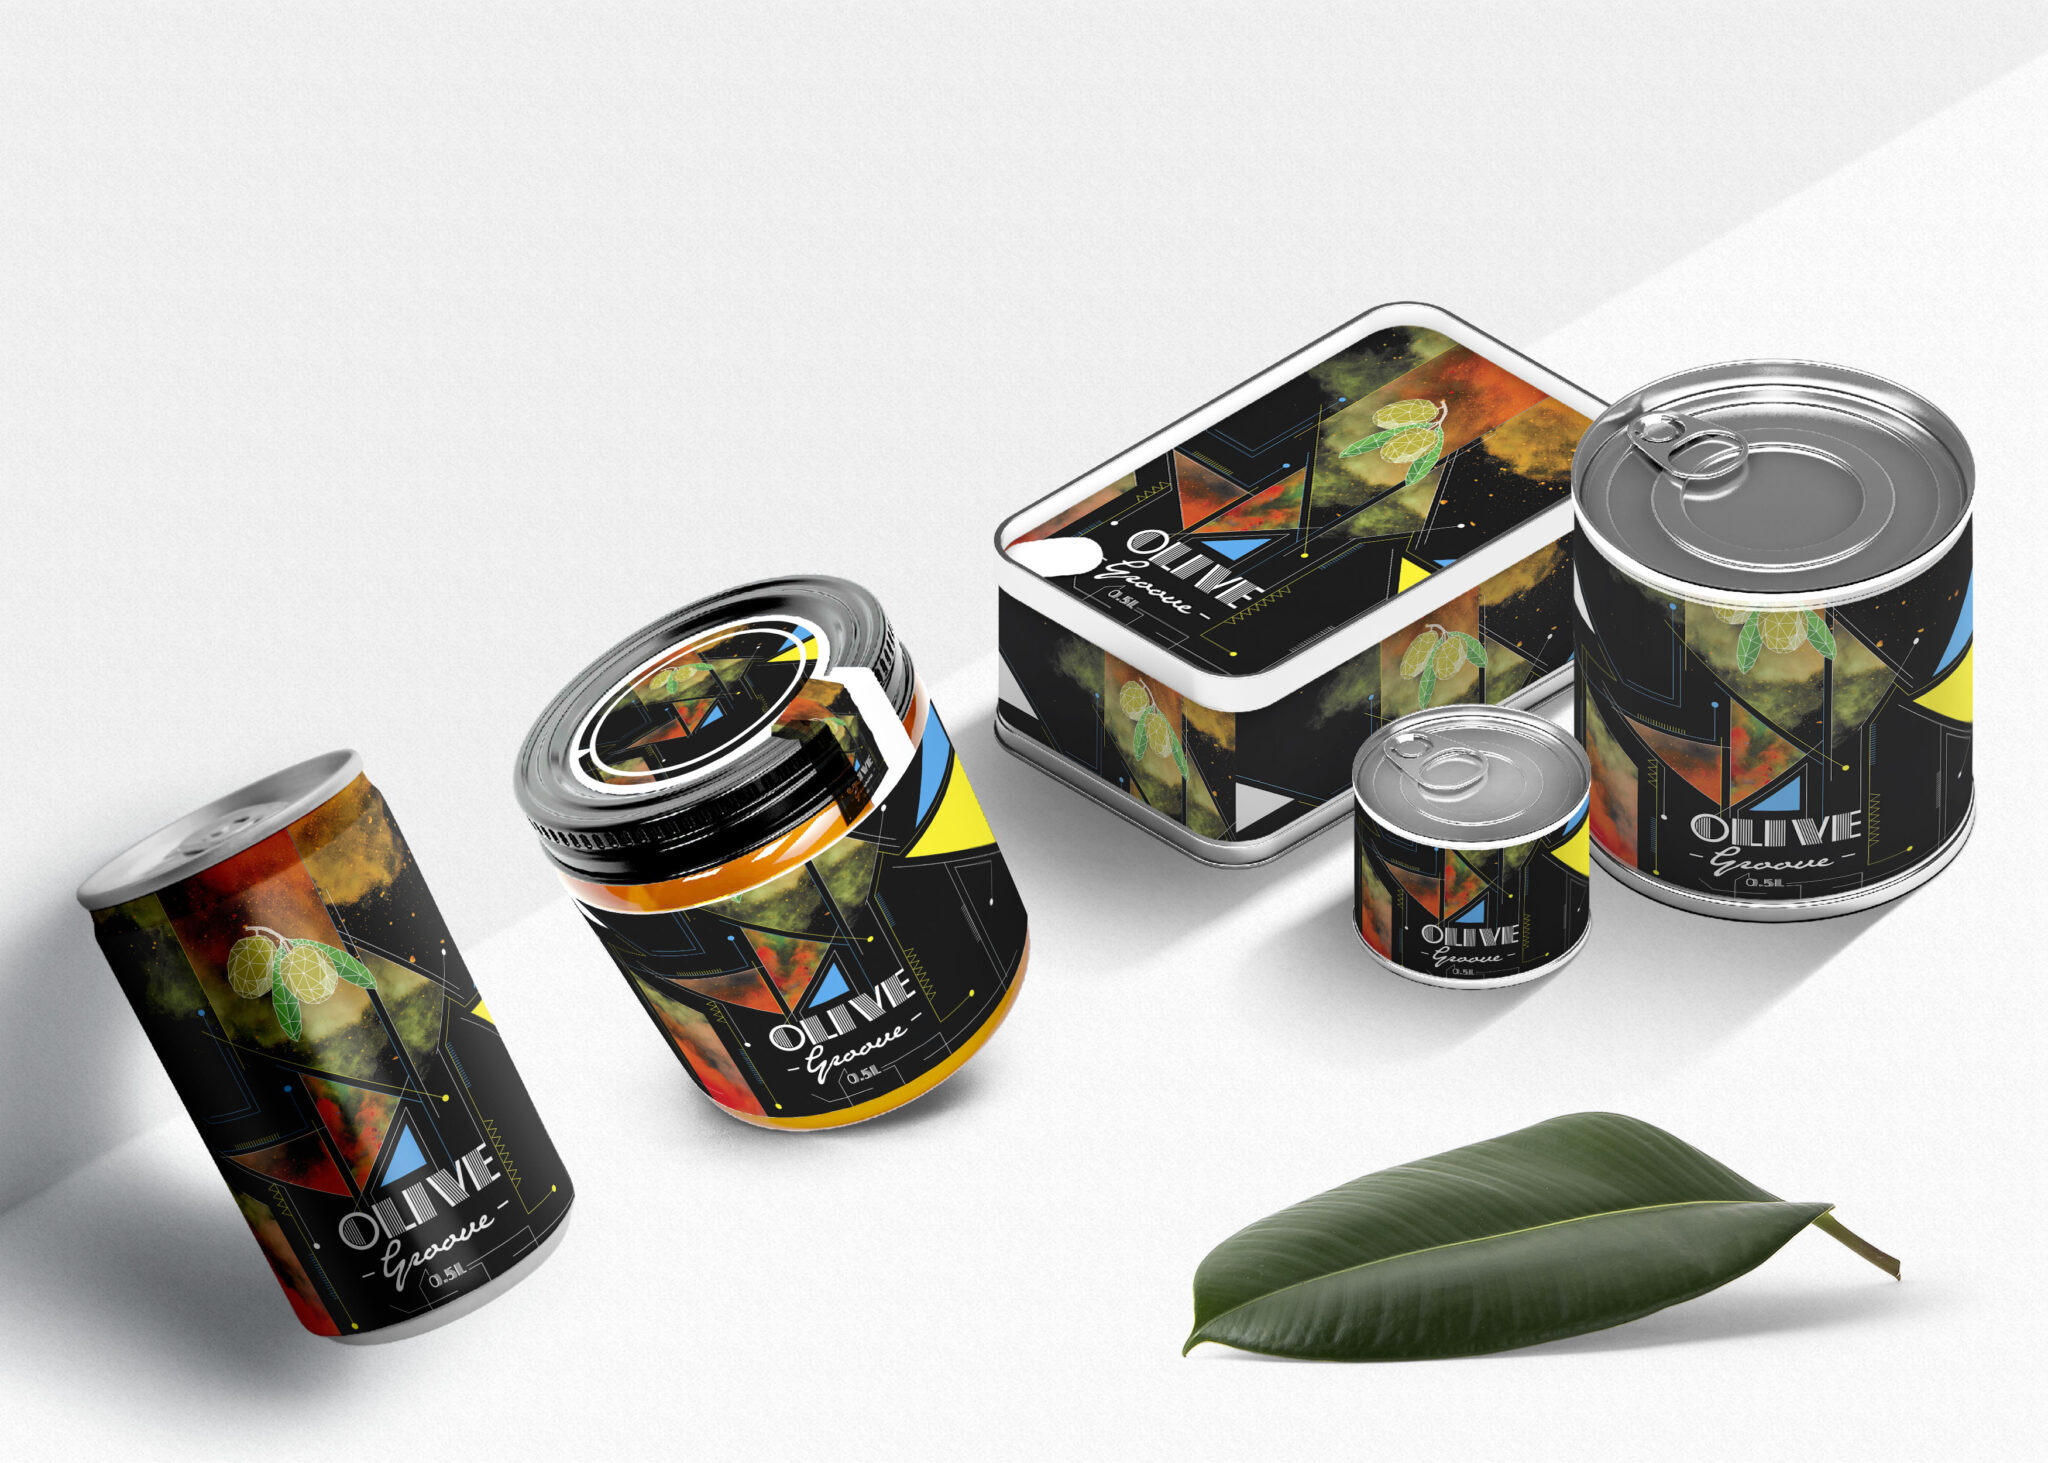 Steel Can Product Design Mockup